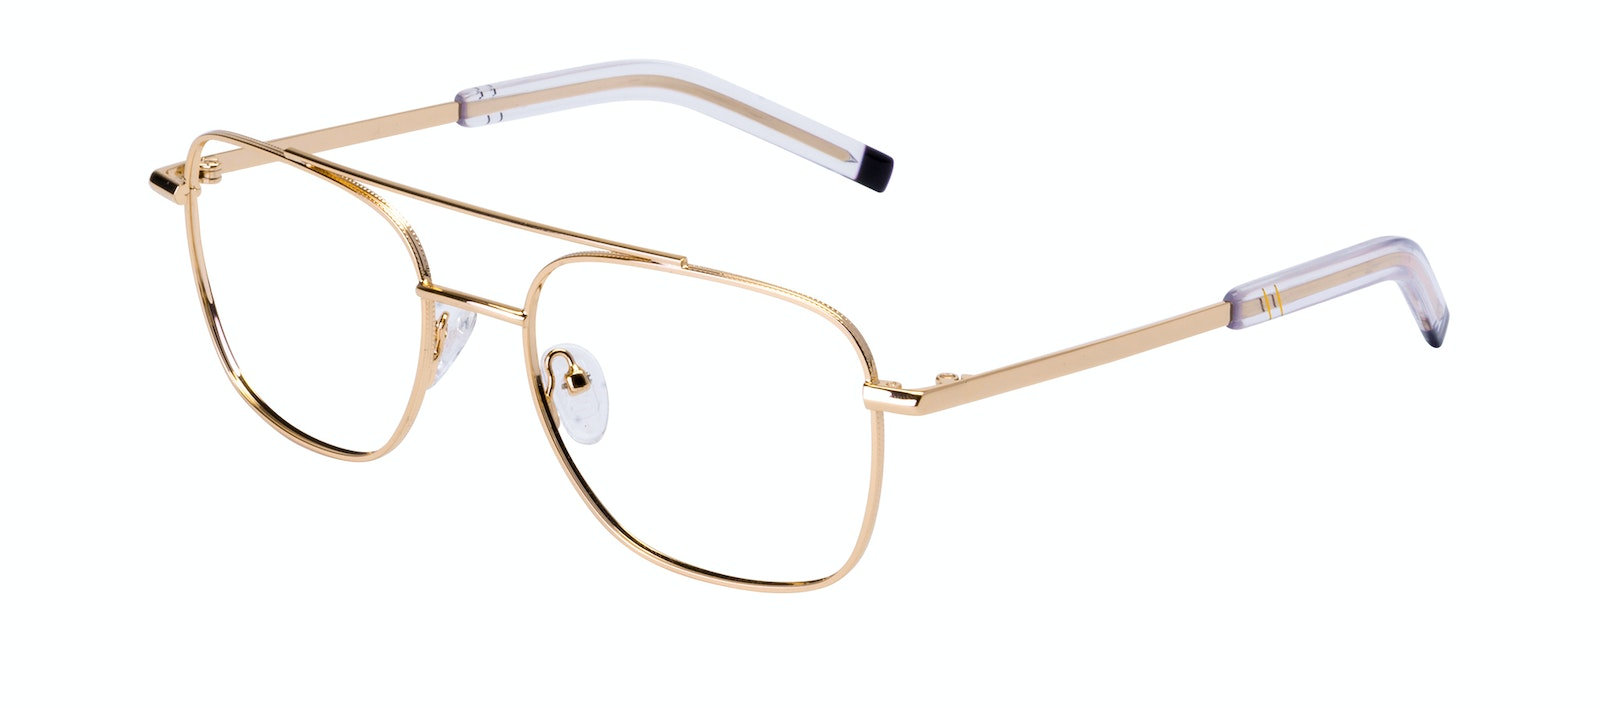 Affordable Fashion Glasses Aviator Eyeglasses Men Drift Gold Tilt